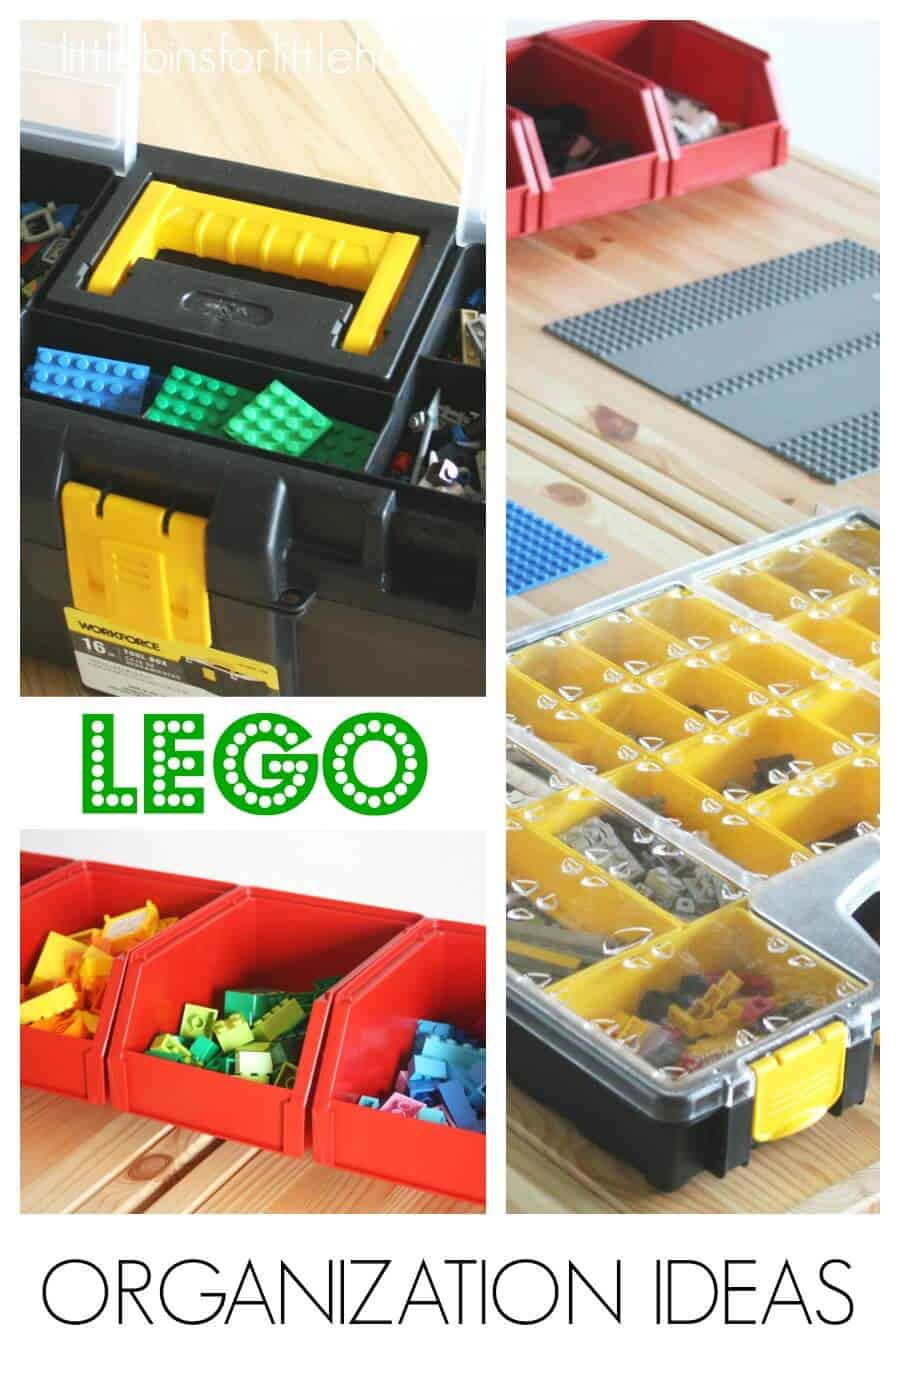 Genial How To Store LEGO Organization Ideas And Brick Storage Solution Ideas For  Kids And Families.